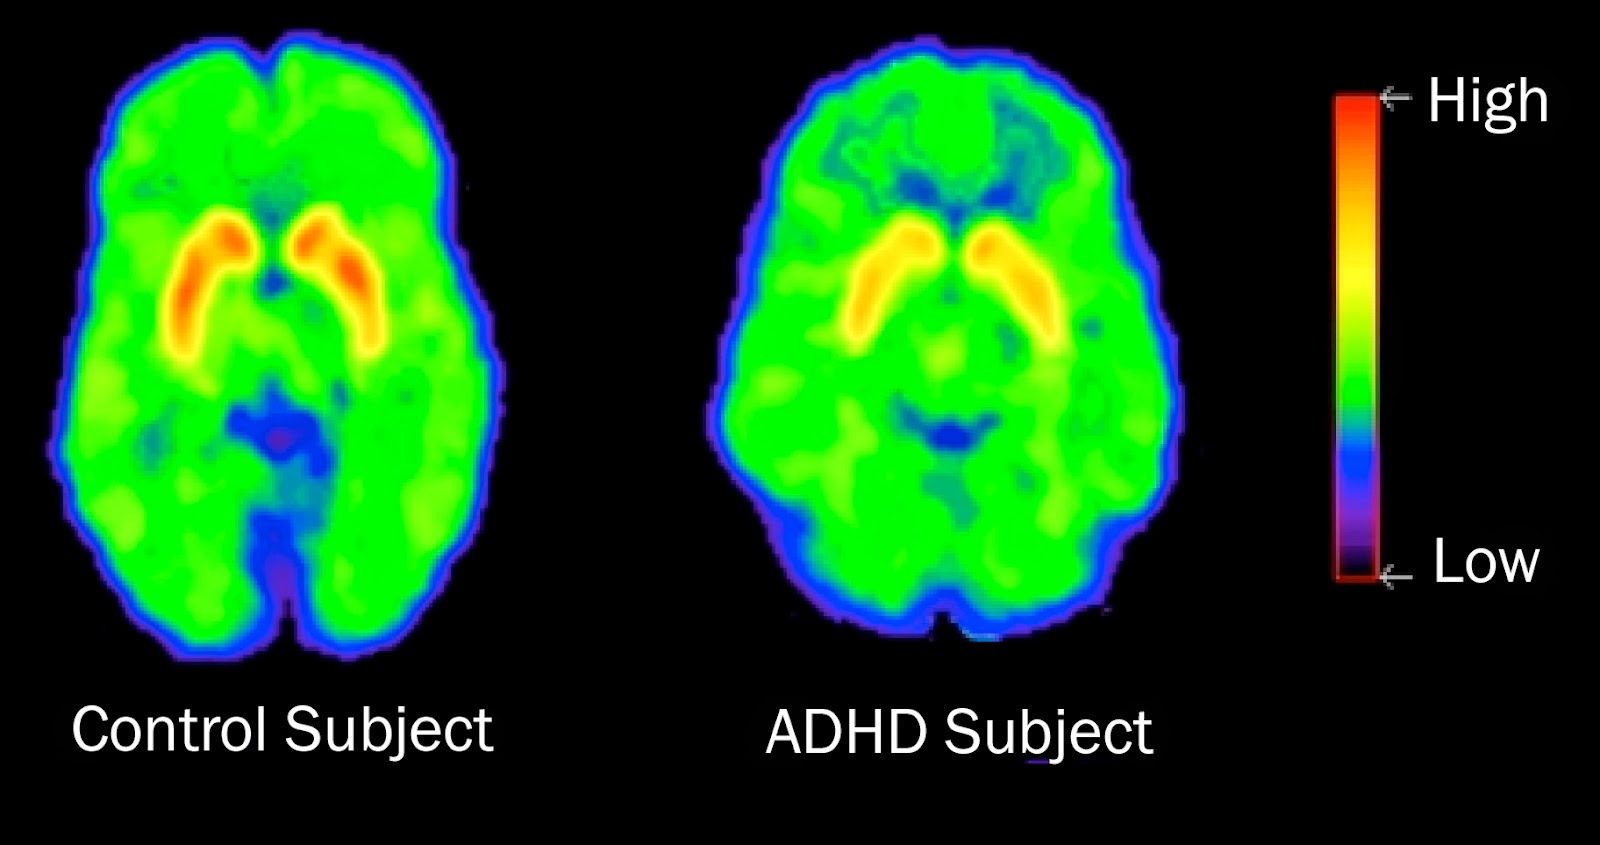 ADHD Symptoms and Treatment